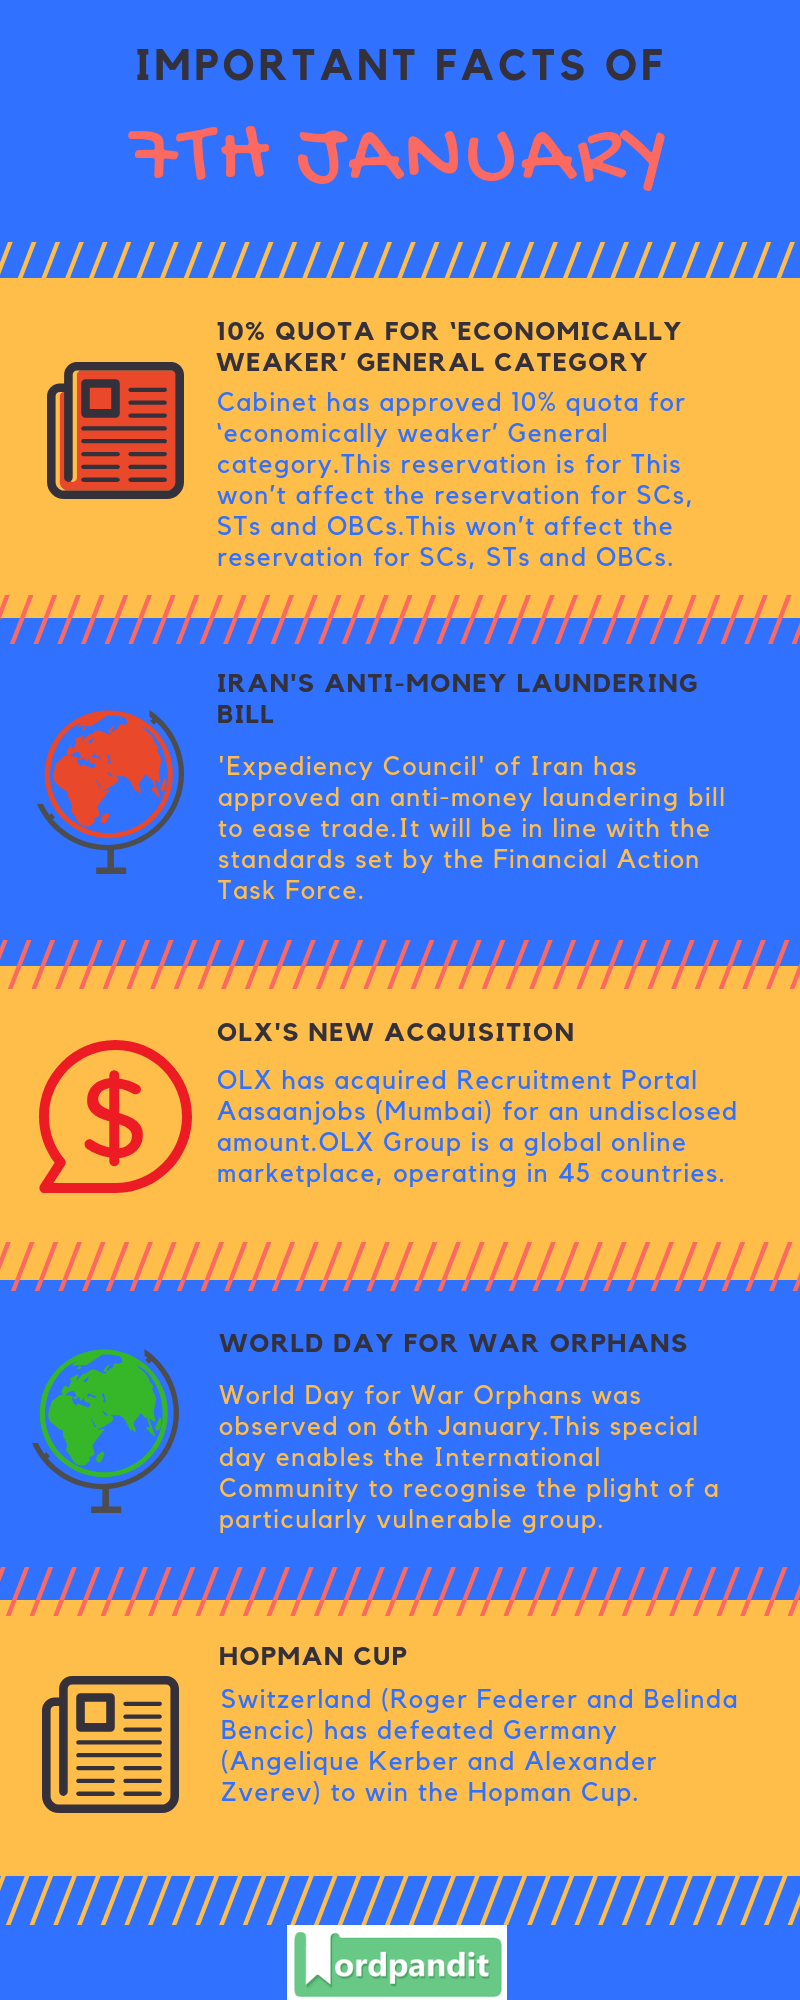 Daily Current Affairs 7 January 2019 Current Affairs Quiz 7 January 2019 Current Affairs Infographic